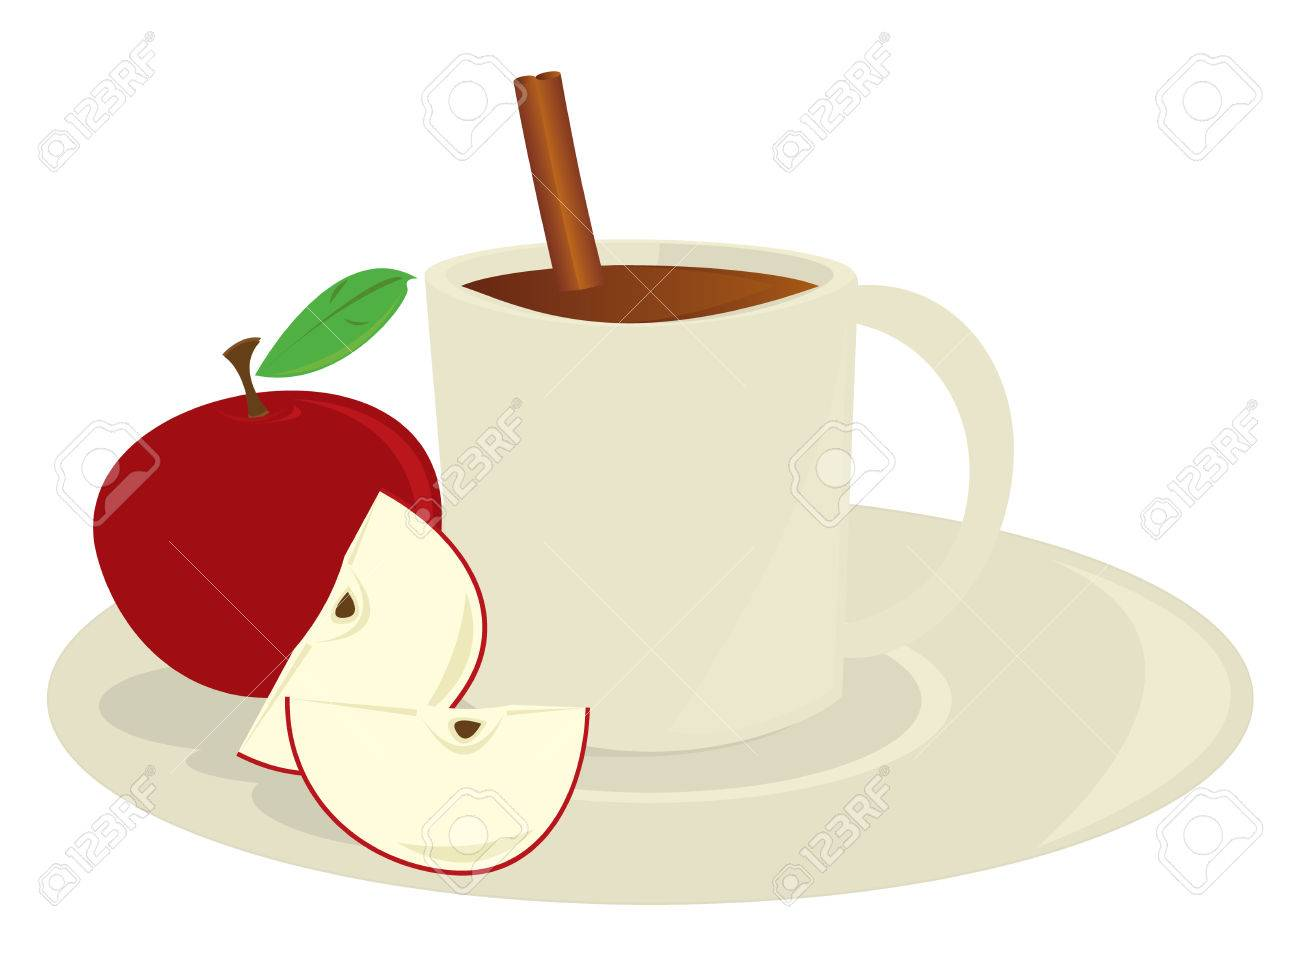 Mug of apple cider with apples and a cinnamon stick isolated on a white background - 6468180